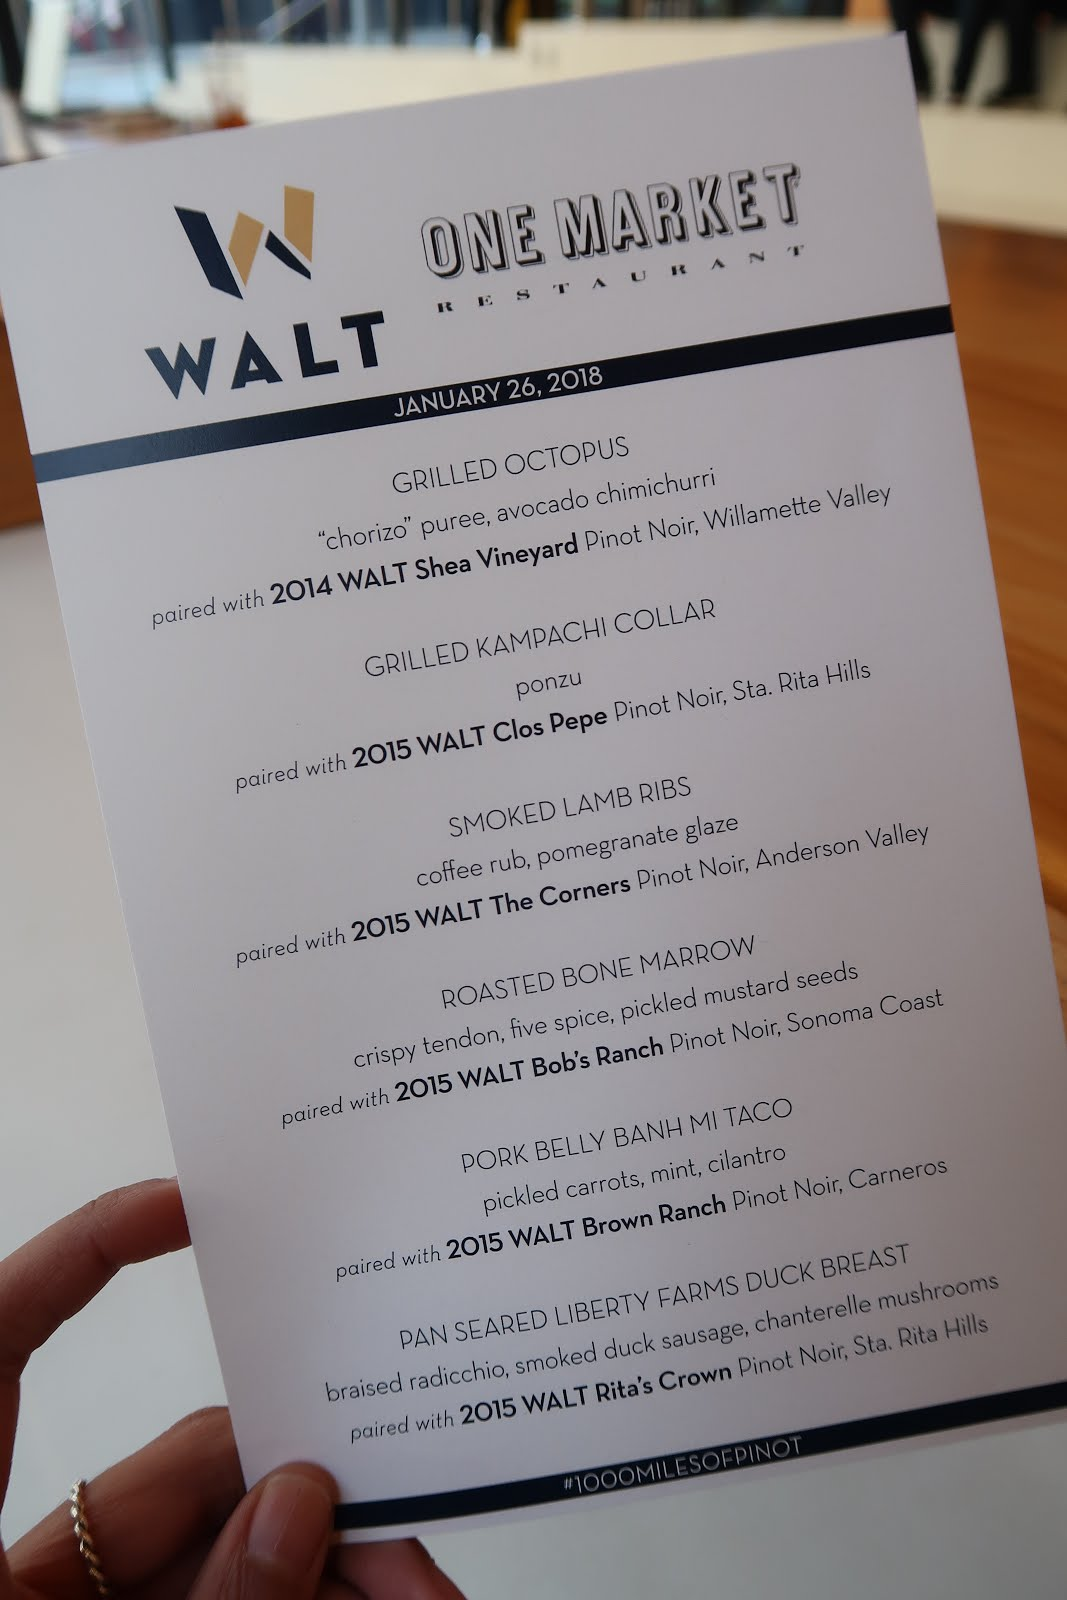 The menu from the One Market restaurant and WALT Wines 1,000 Miles of Pinot tasting experience.